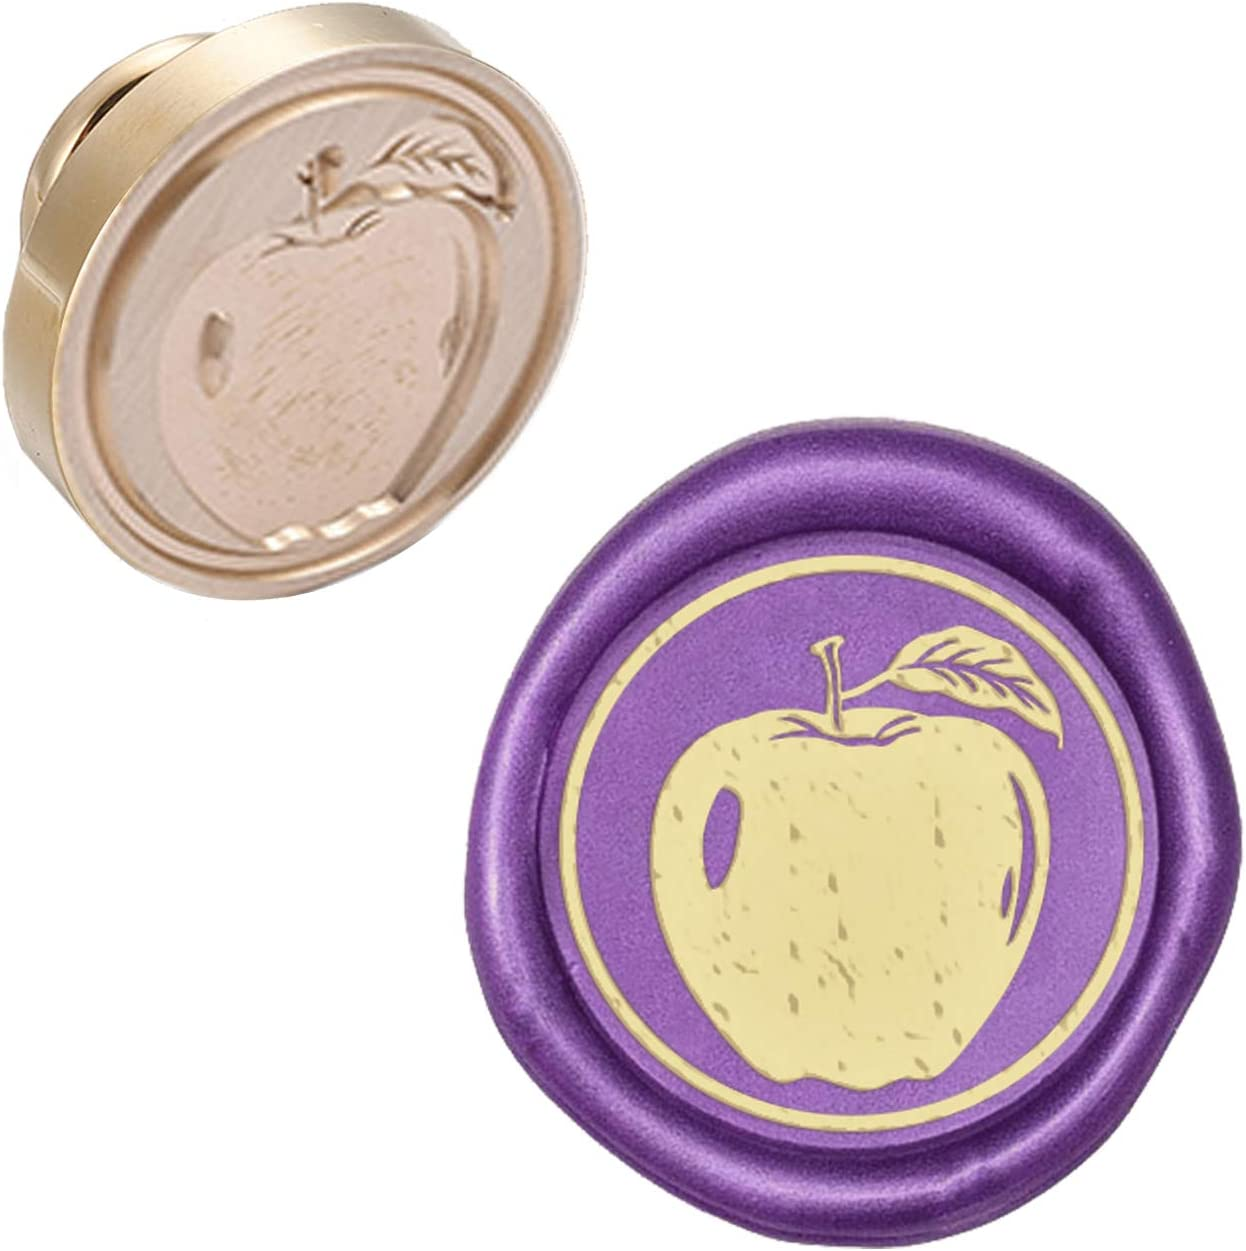 CRASPIRE Wax Seal Stamp Head Replacement Apple Removable Sealing Brass Stamp Head Olny for Creative Gift Envelopes Invitations Cards Decoration